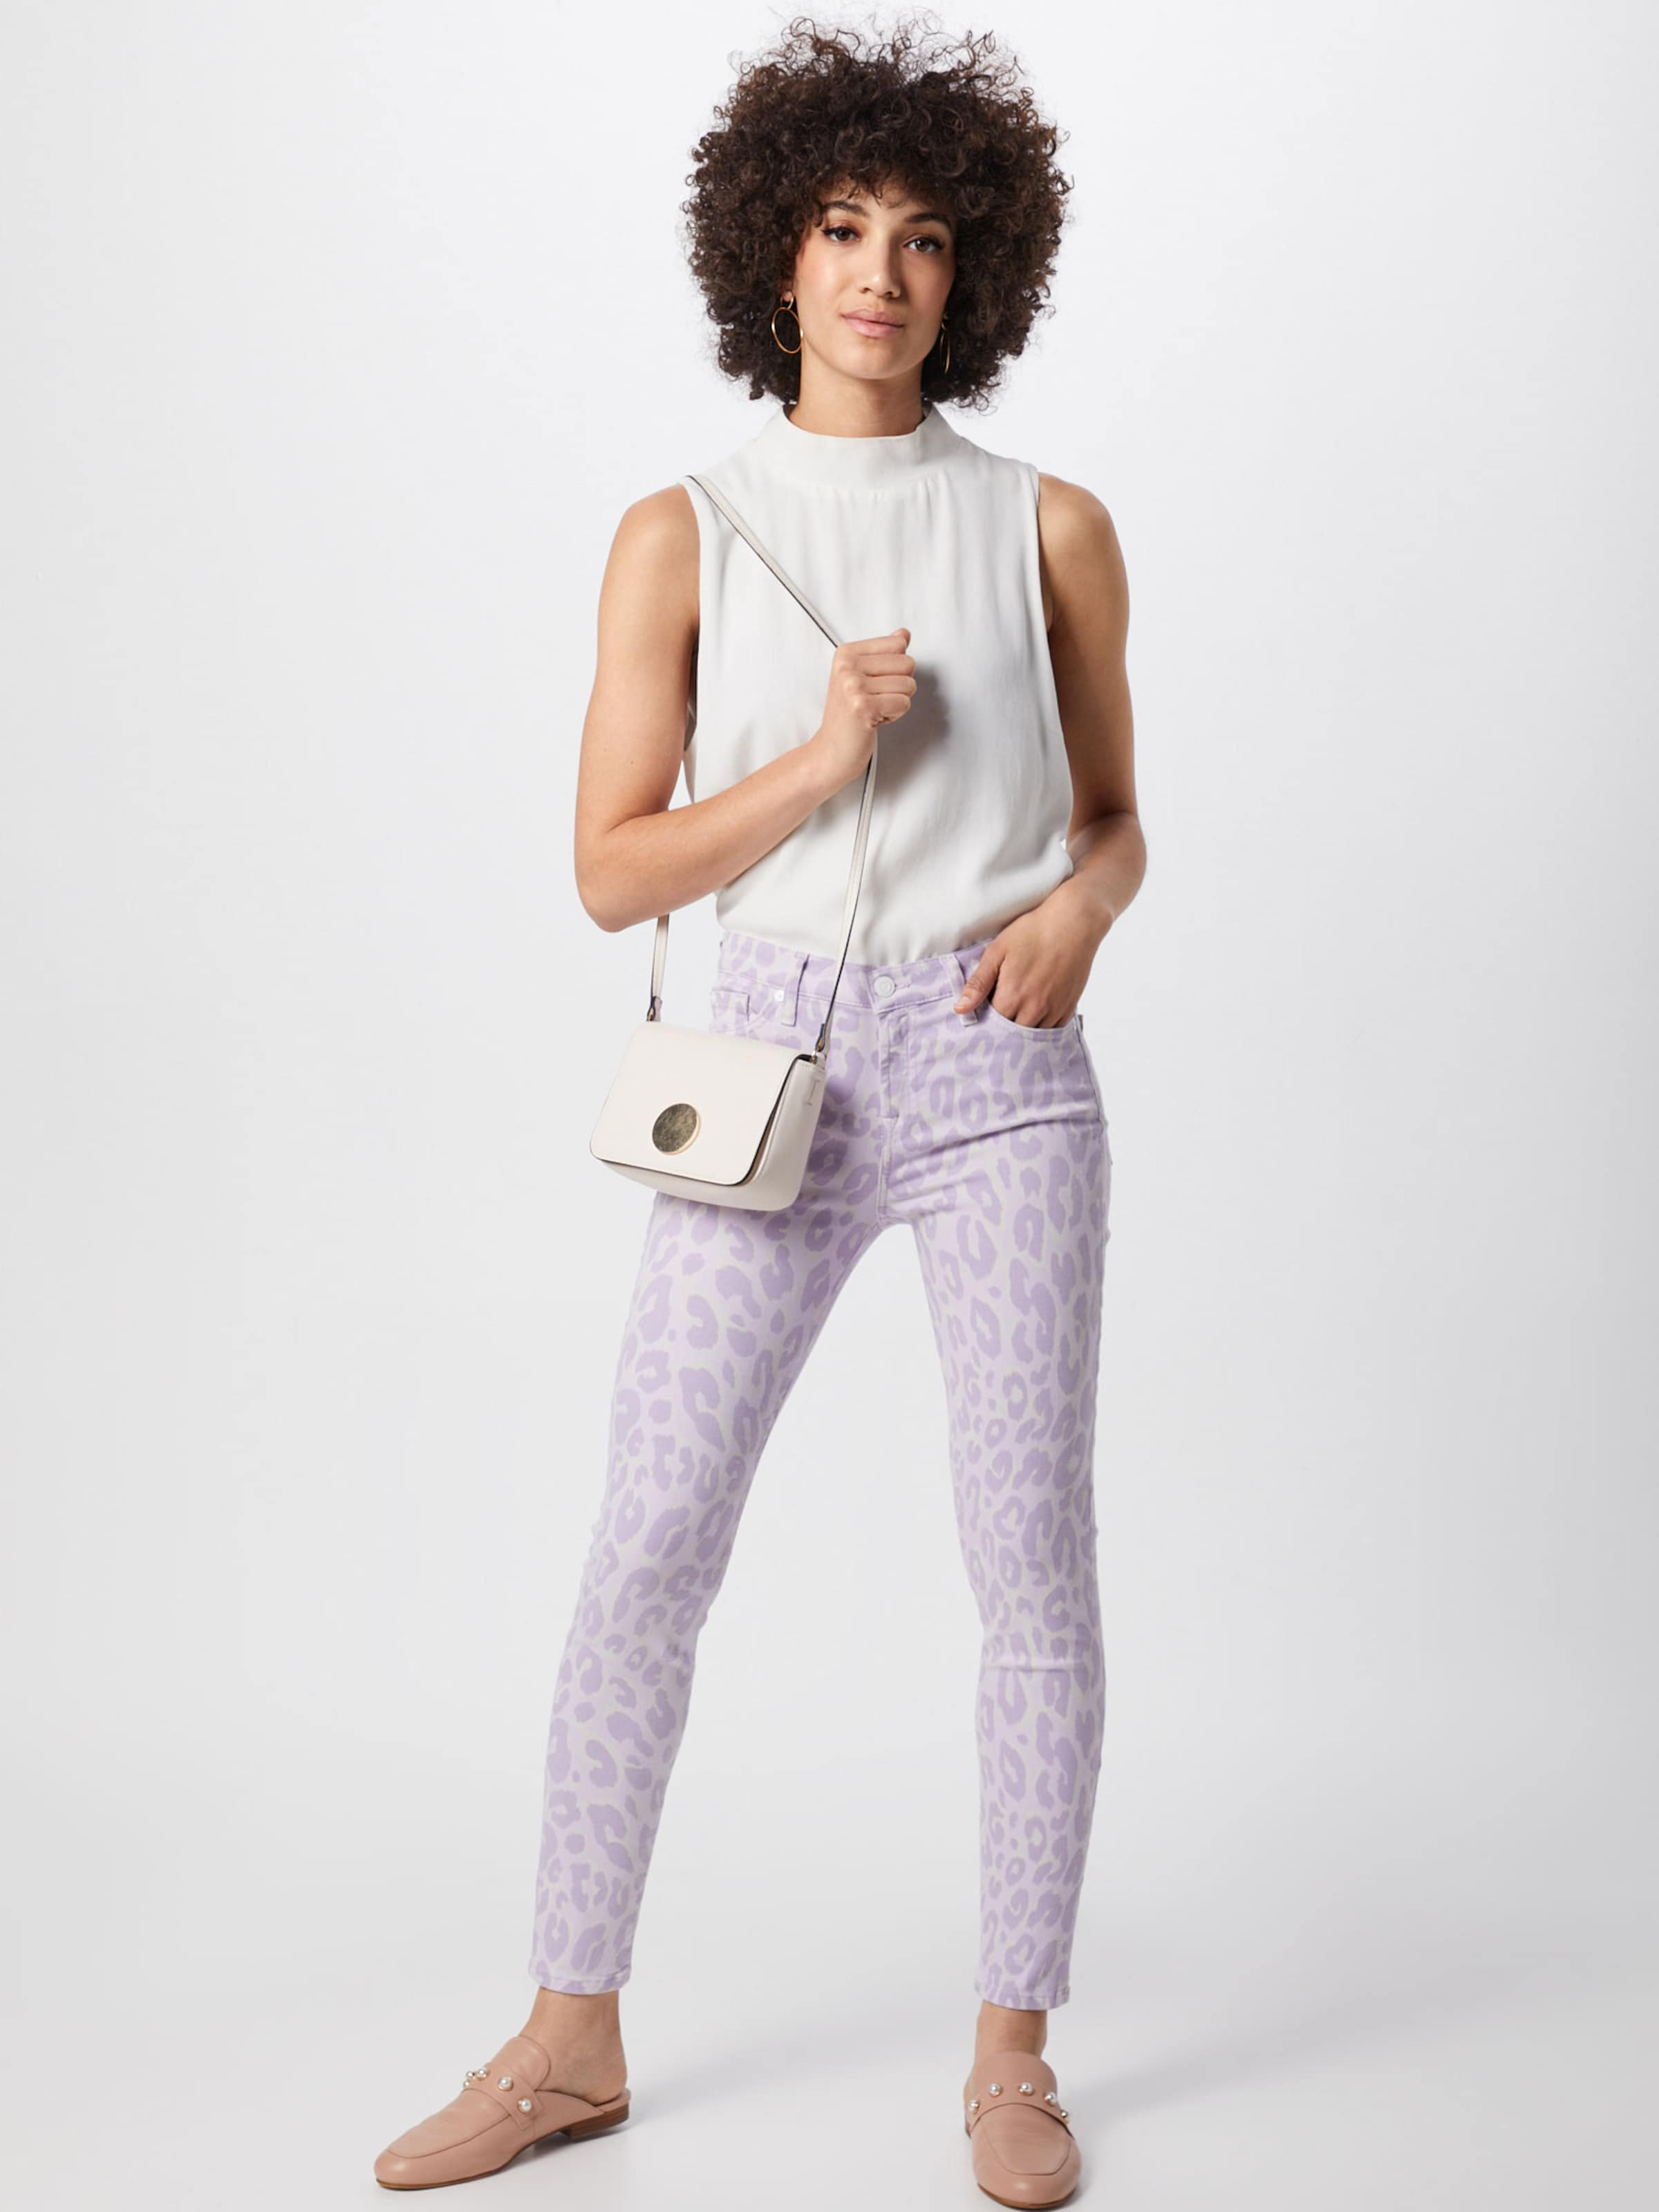 For Jean En 7 'the All Mankind Skinny Violet Crop' WEDH2I9